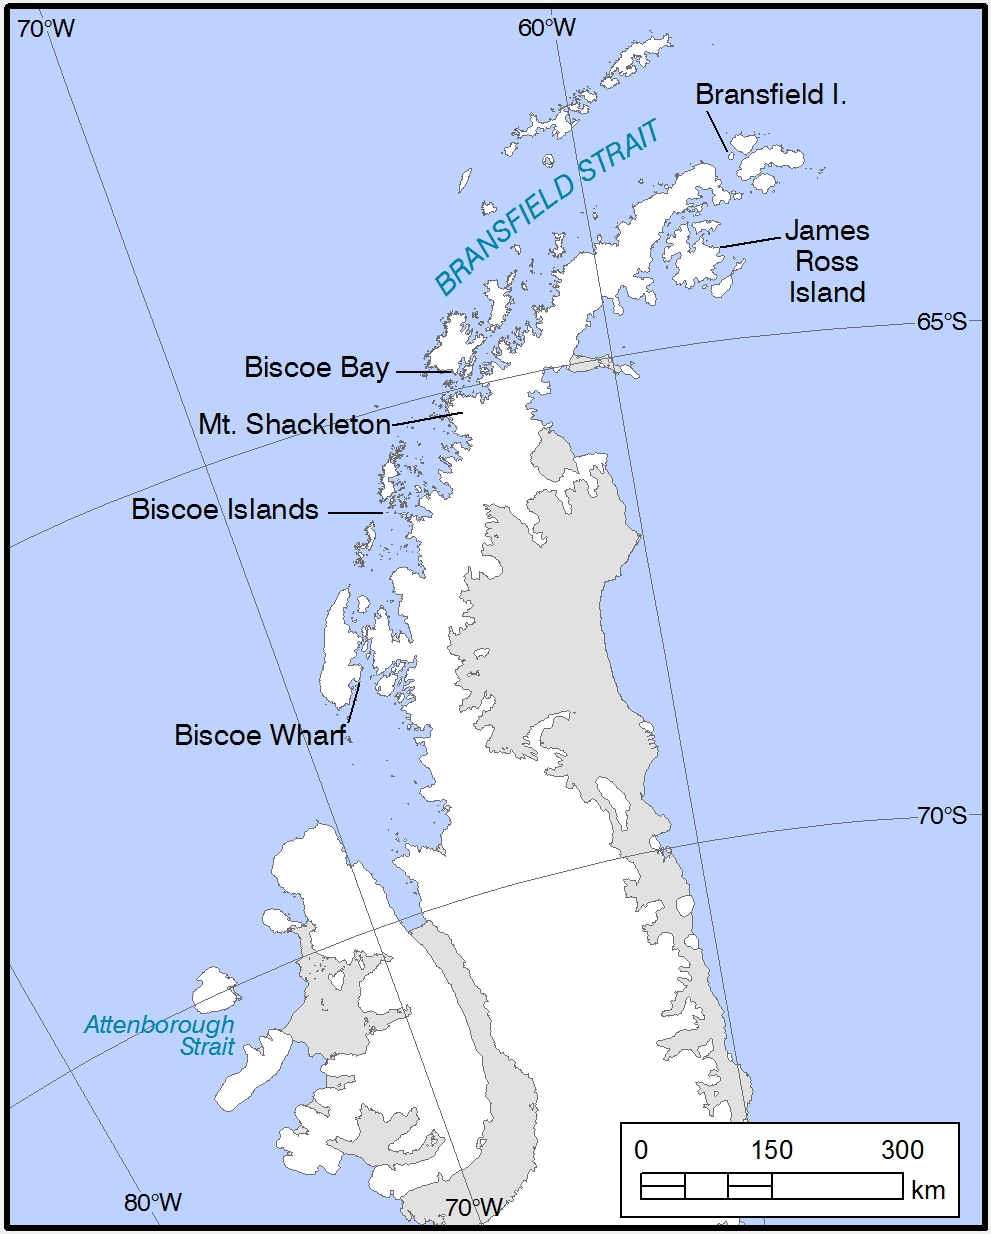 Names of BAS Research Vessels, noted in Antarctic Place names.